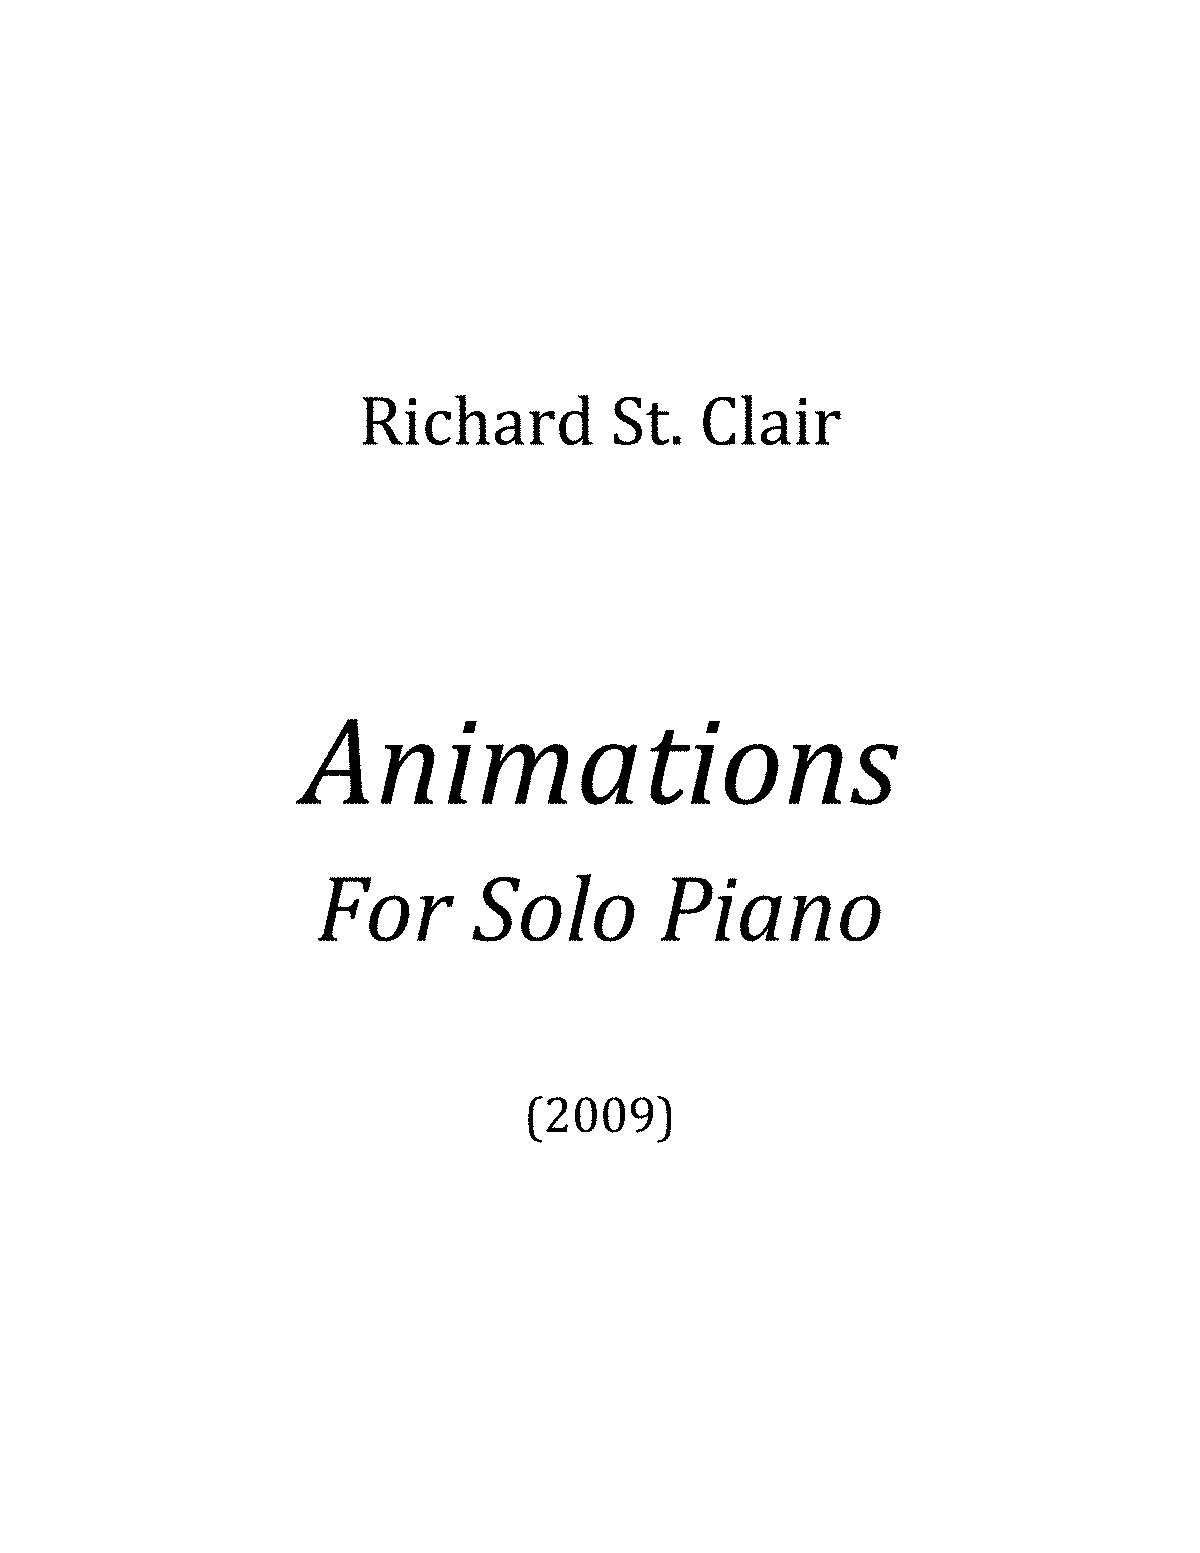 WIMA.d869-Animations for Solo Piano.pdf